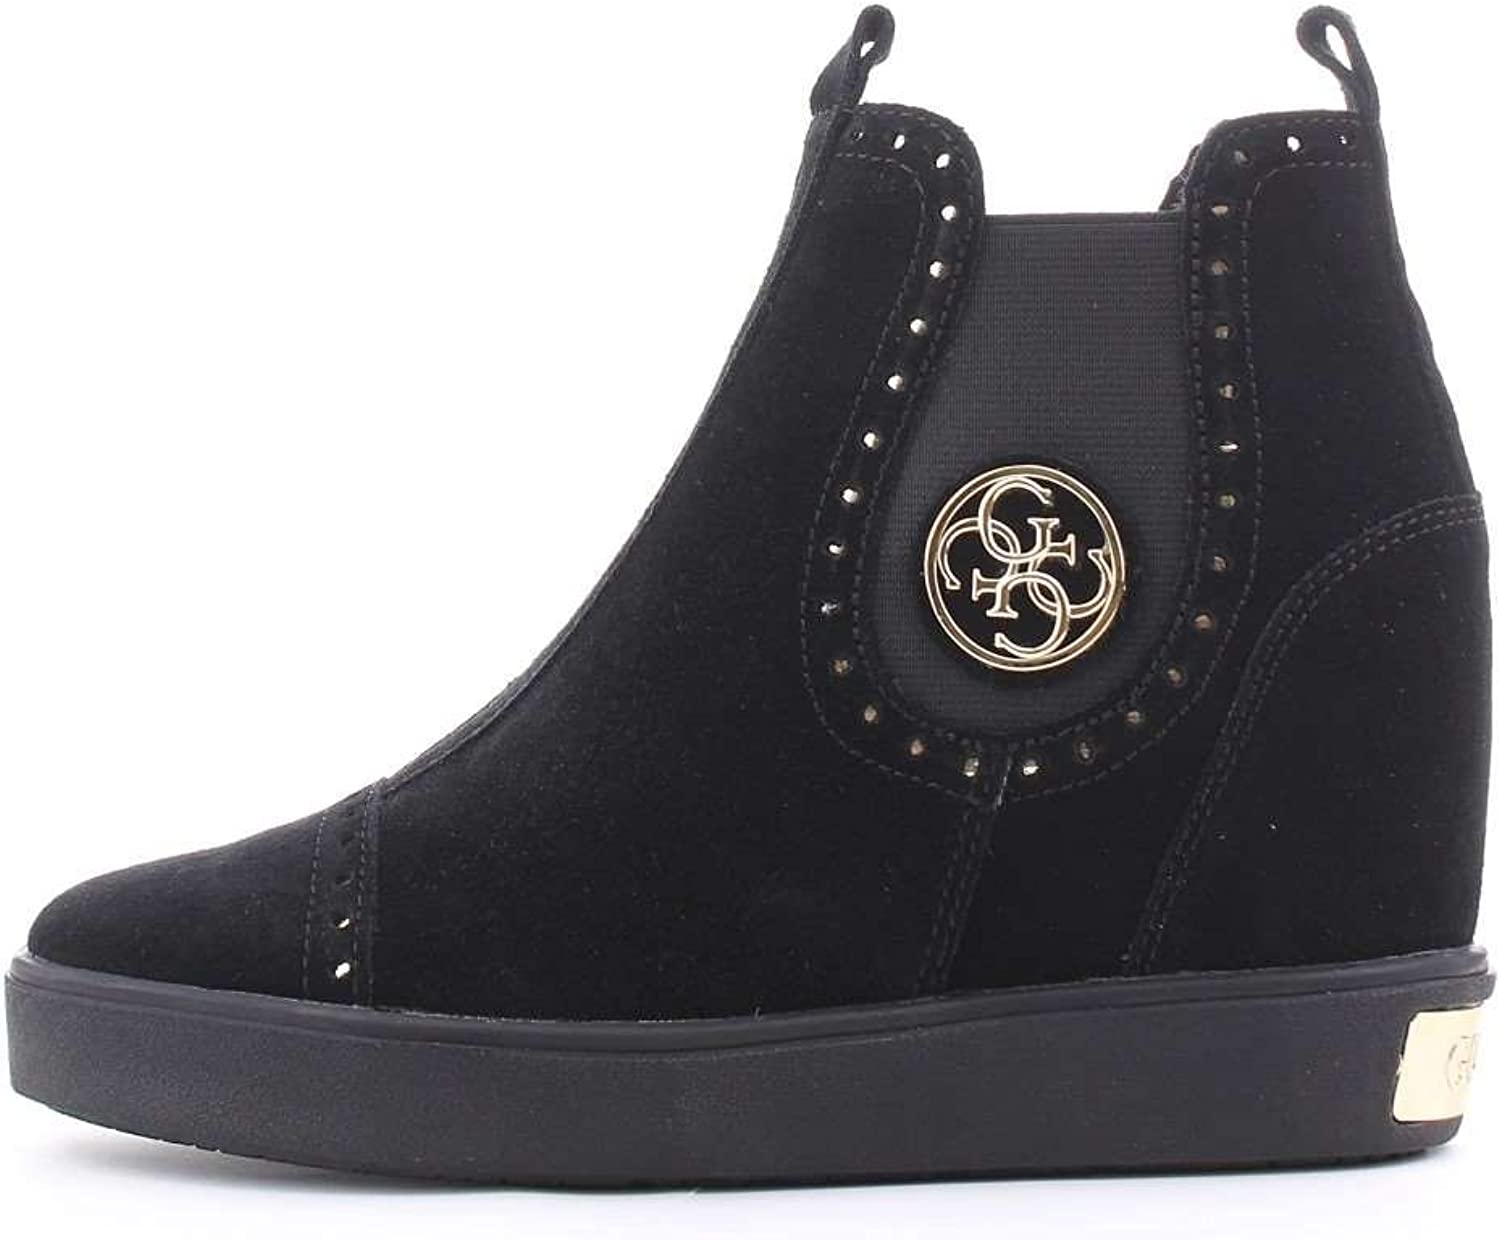 Guess FLFRD3SUE12 Ankle Boots Women